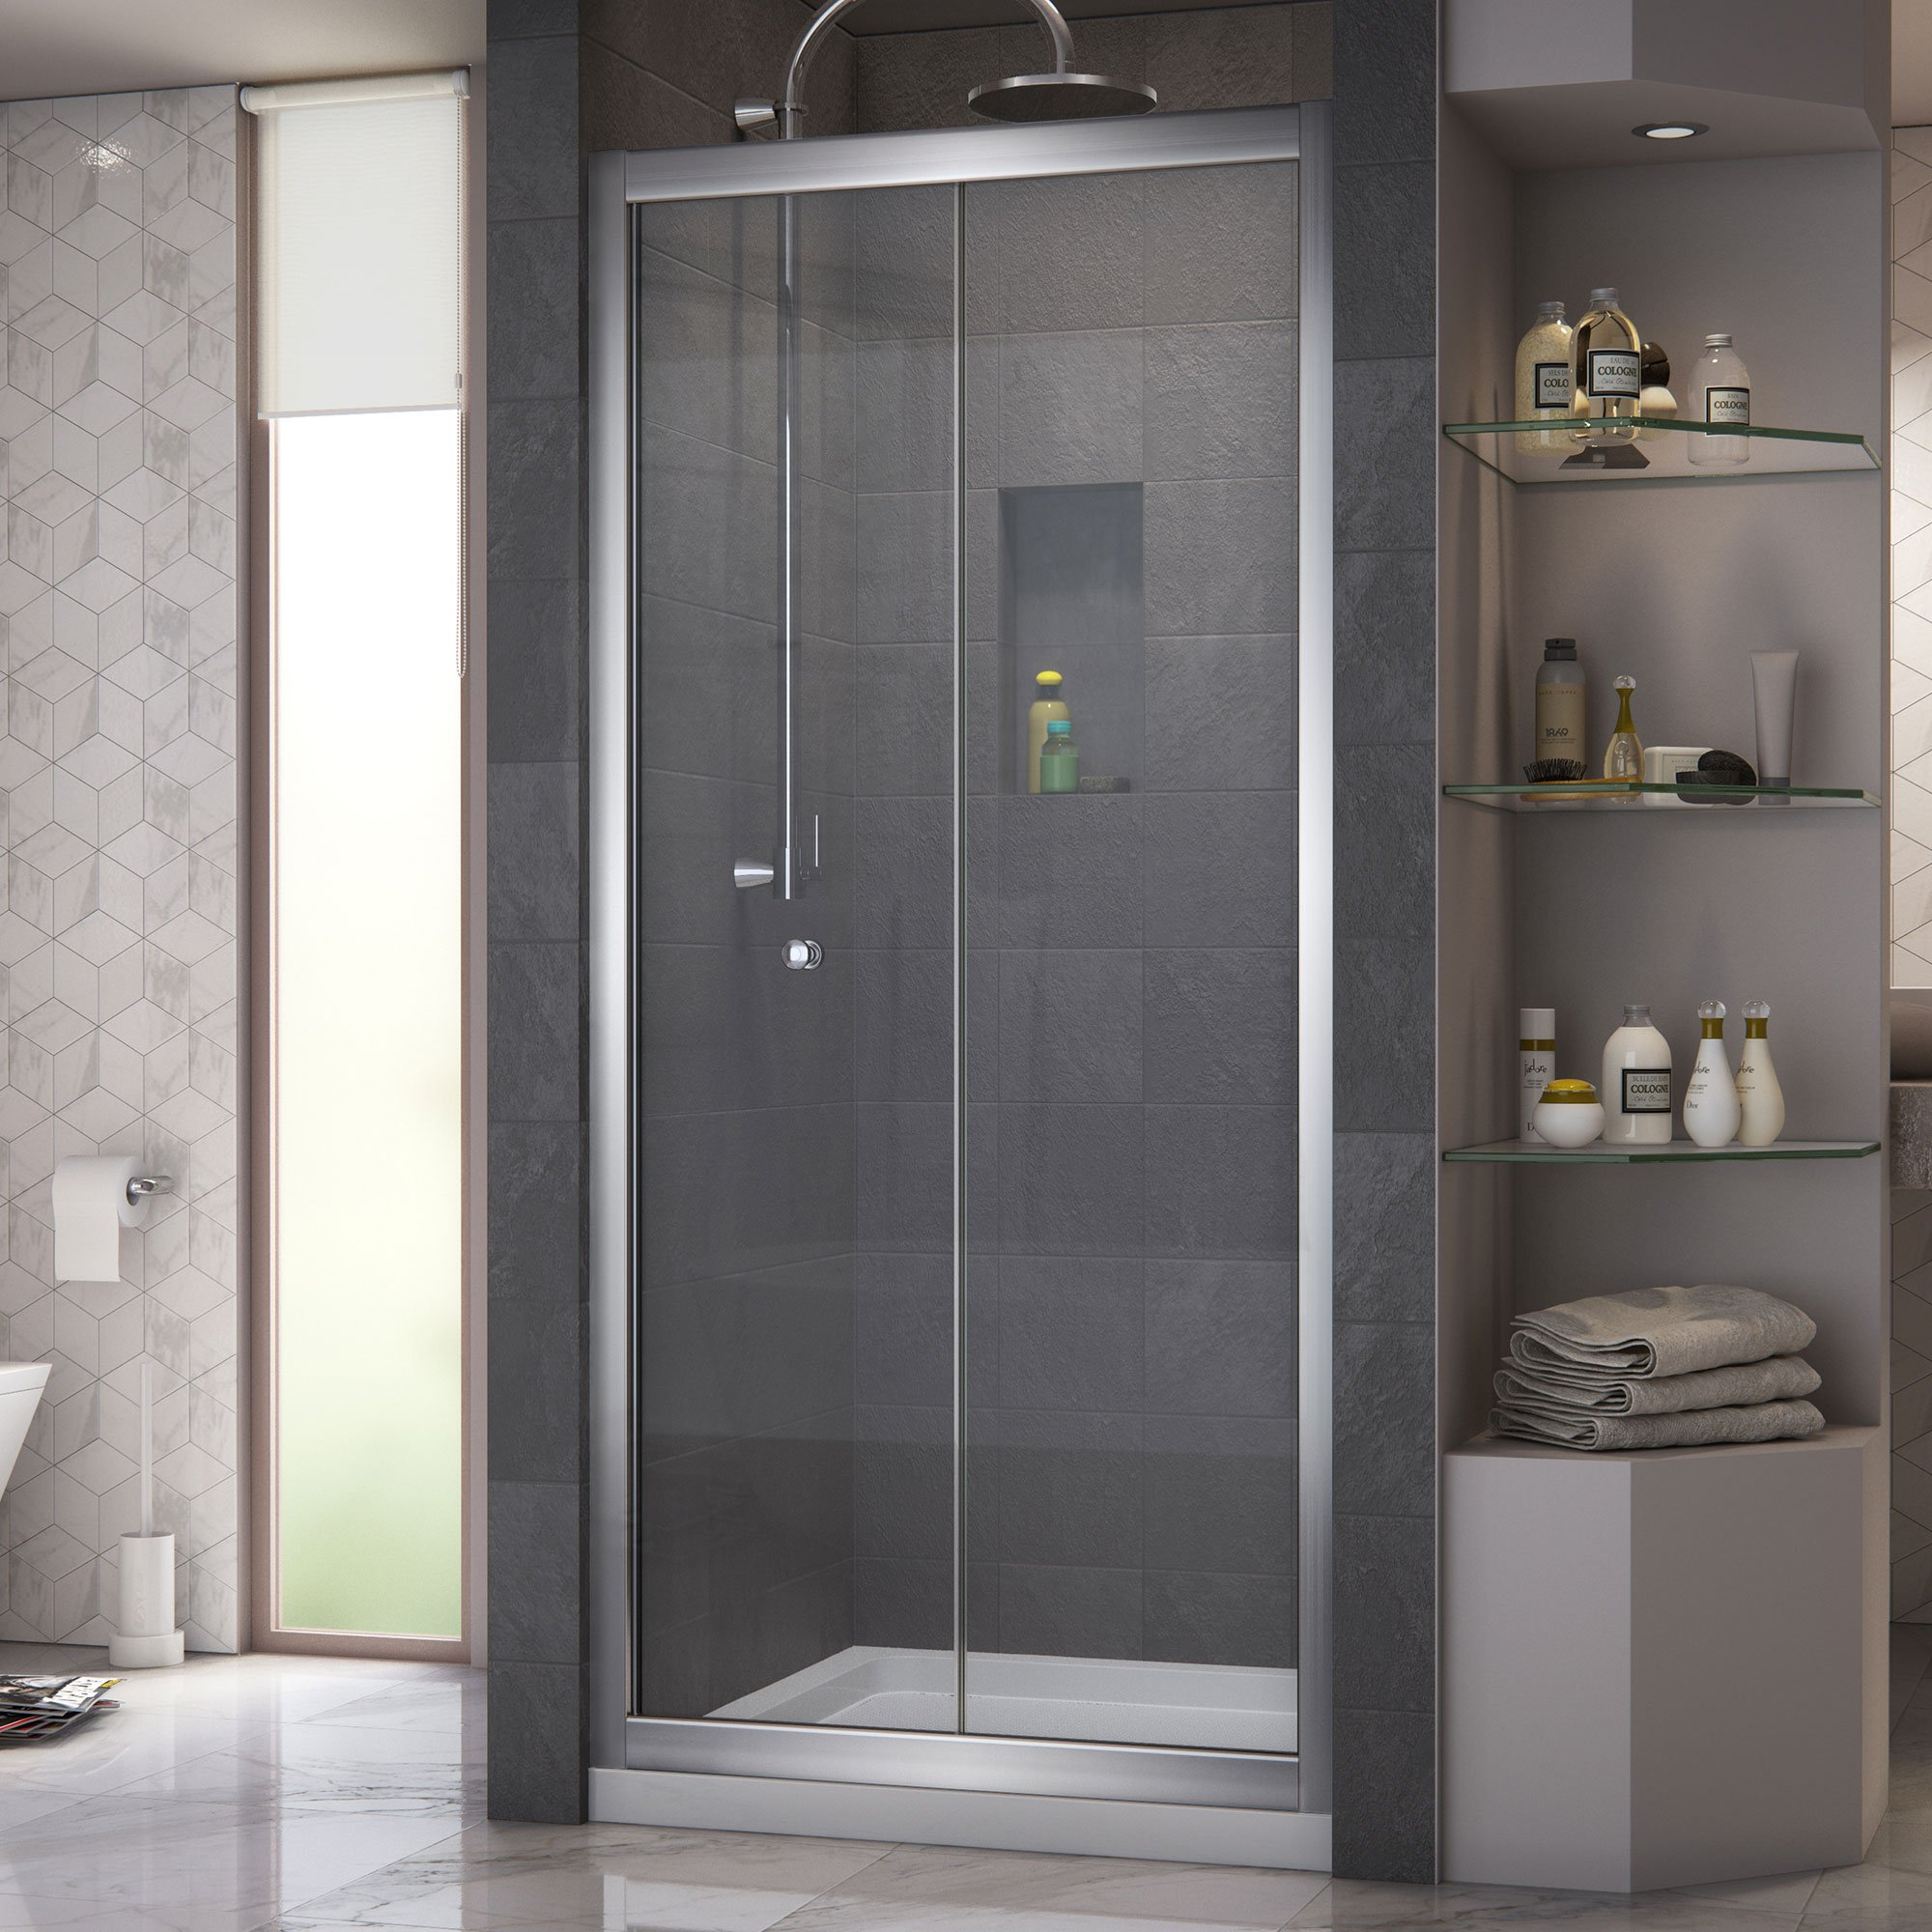 DreamLine Butterfly 34-35 1/2 in. Width, Frameless Bi-Fold Shower Door, 1/4'' Glass, Chrome Finish by DreamLine (Image #4)